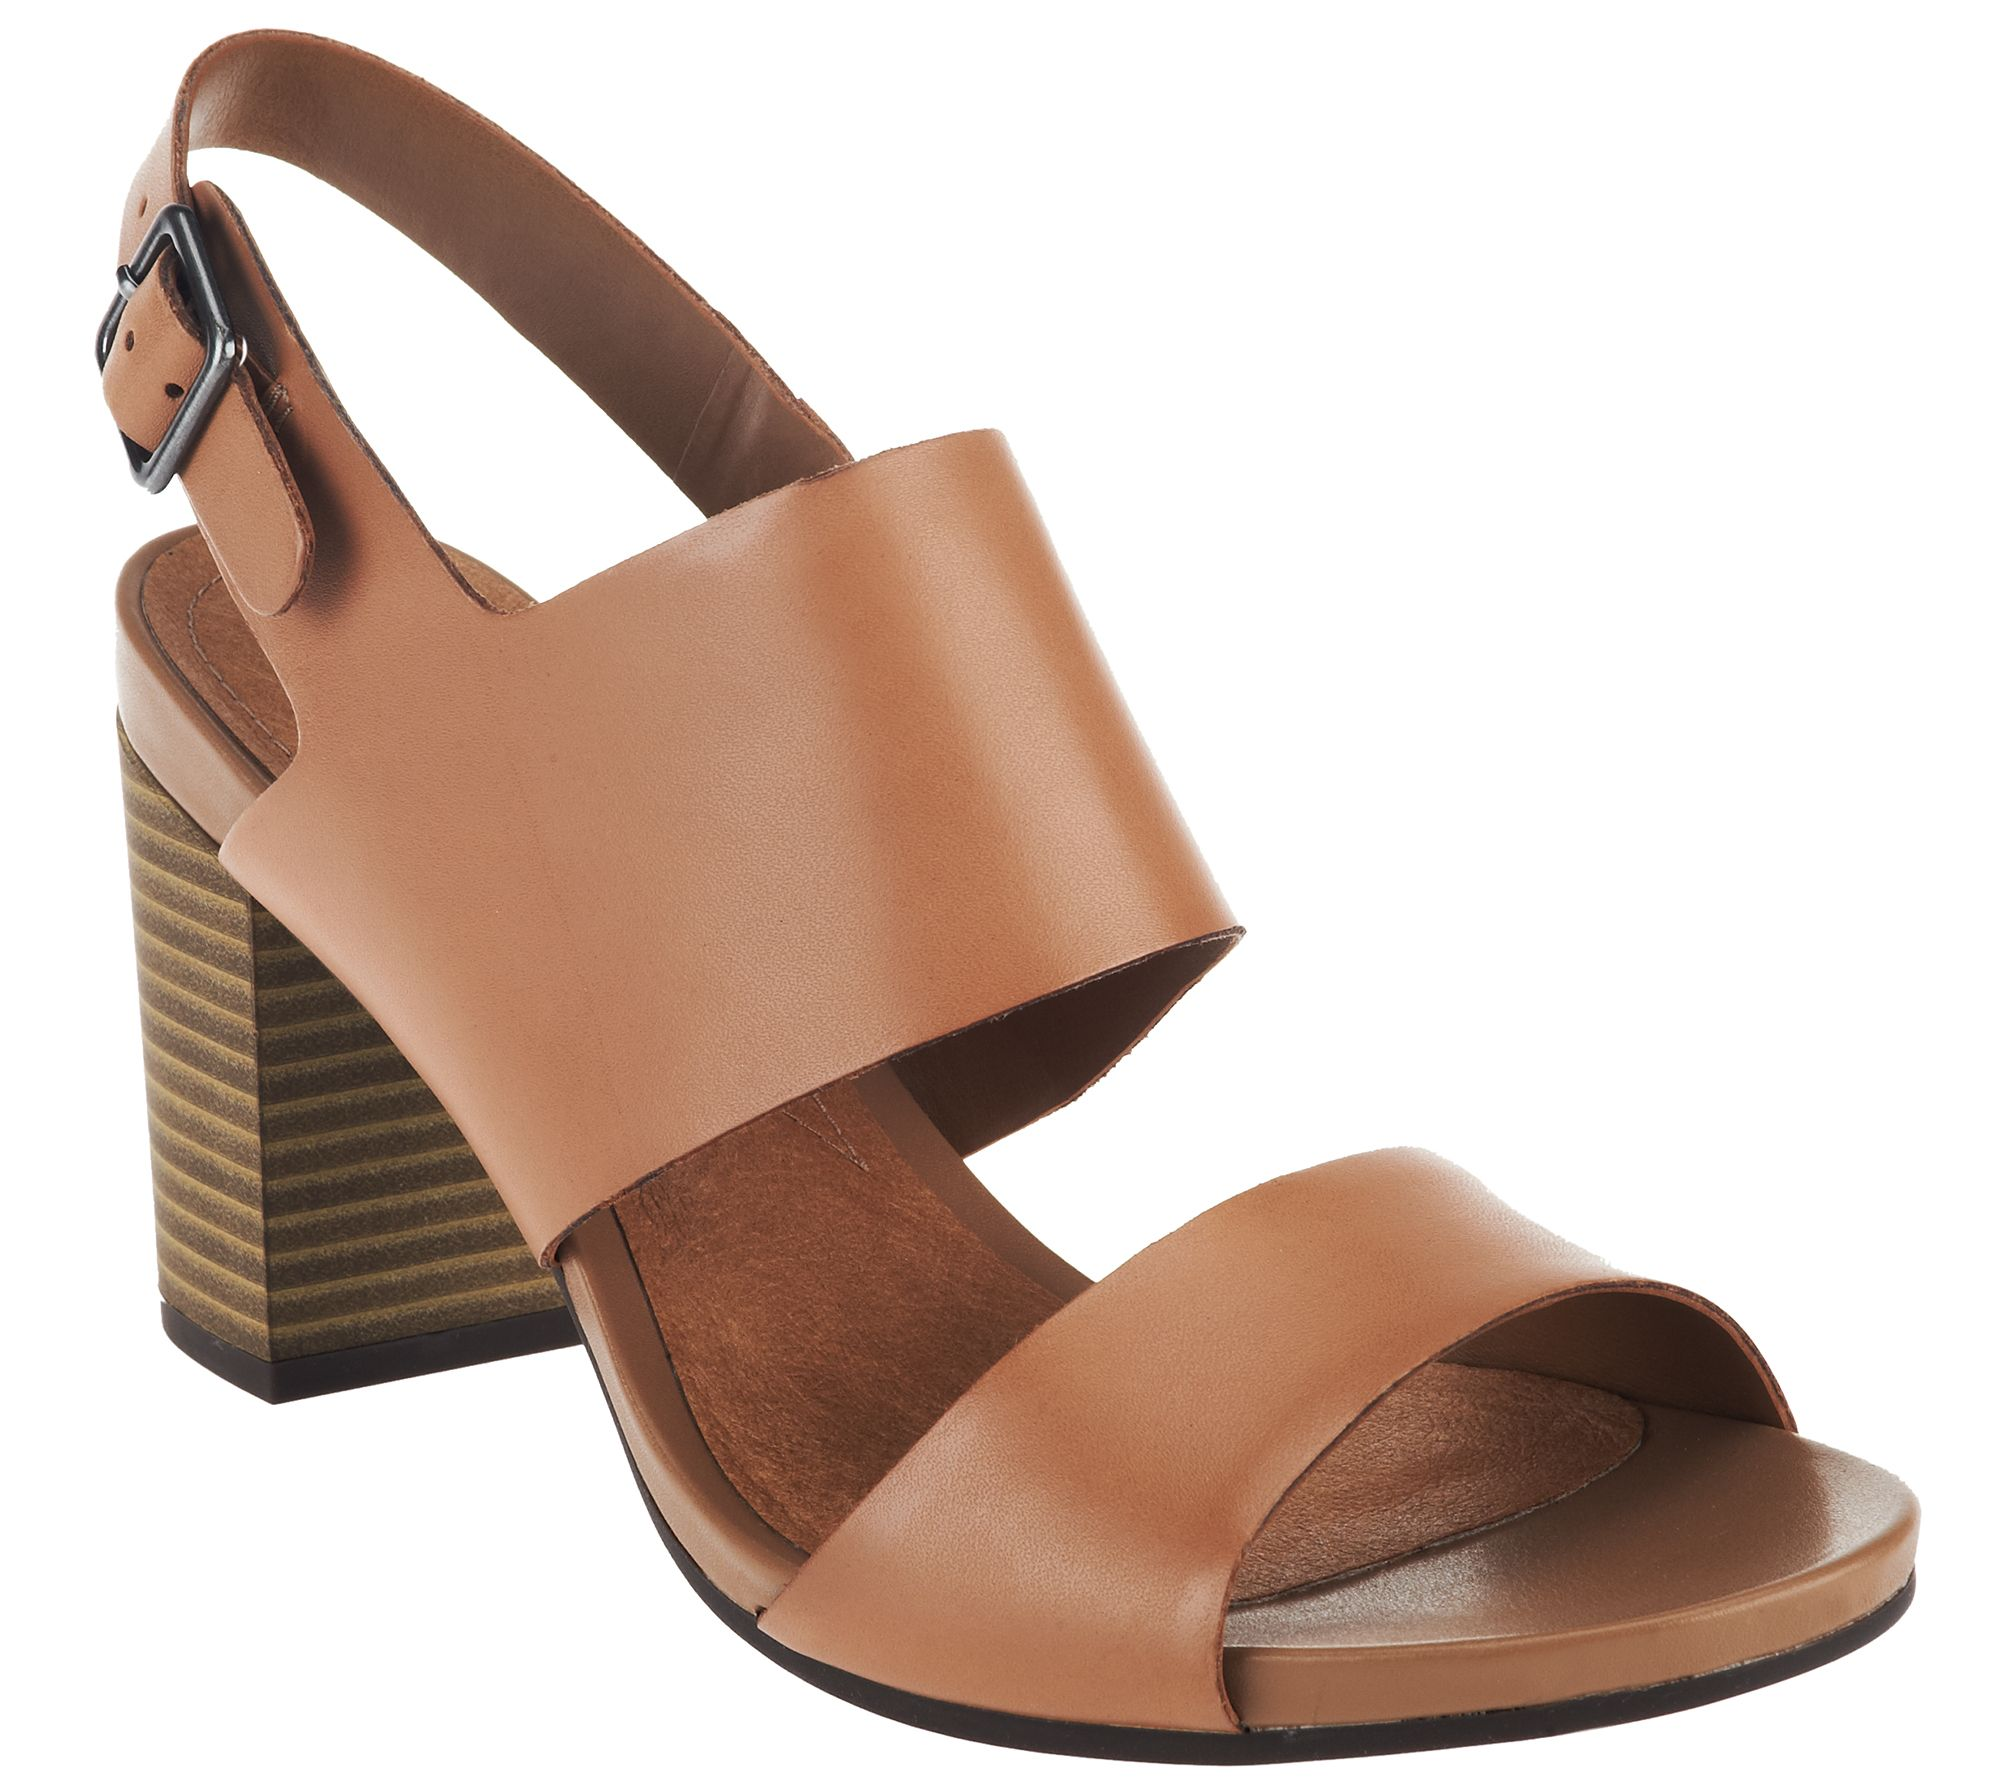 Ships 2/15 Clarks Leather Block Heel Sandals - Banoy Tulia